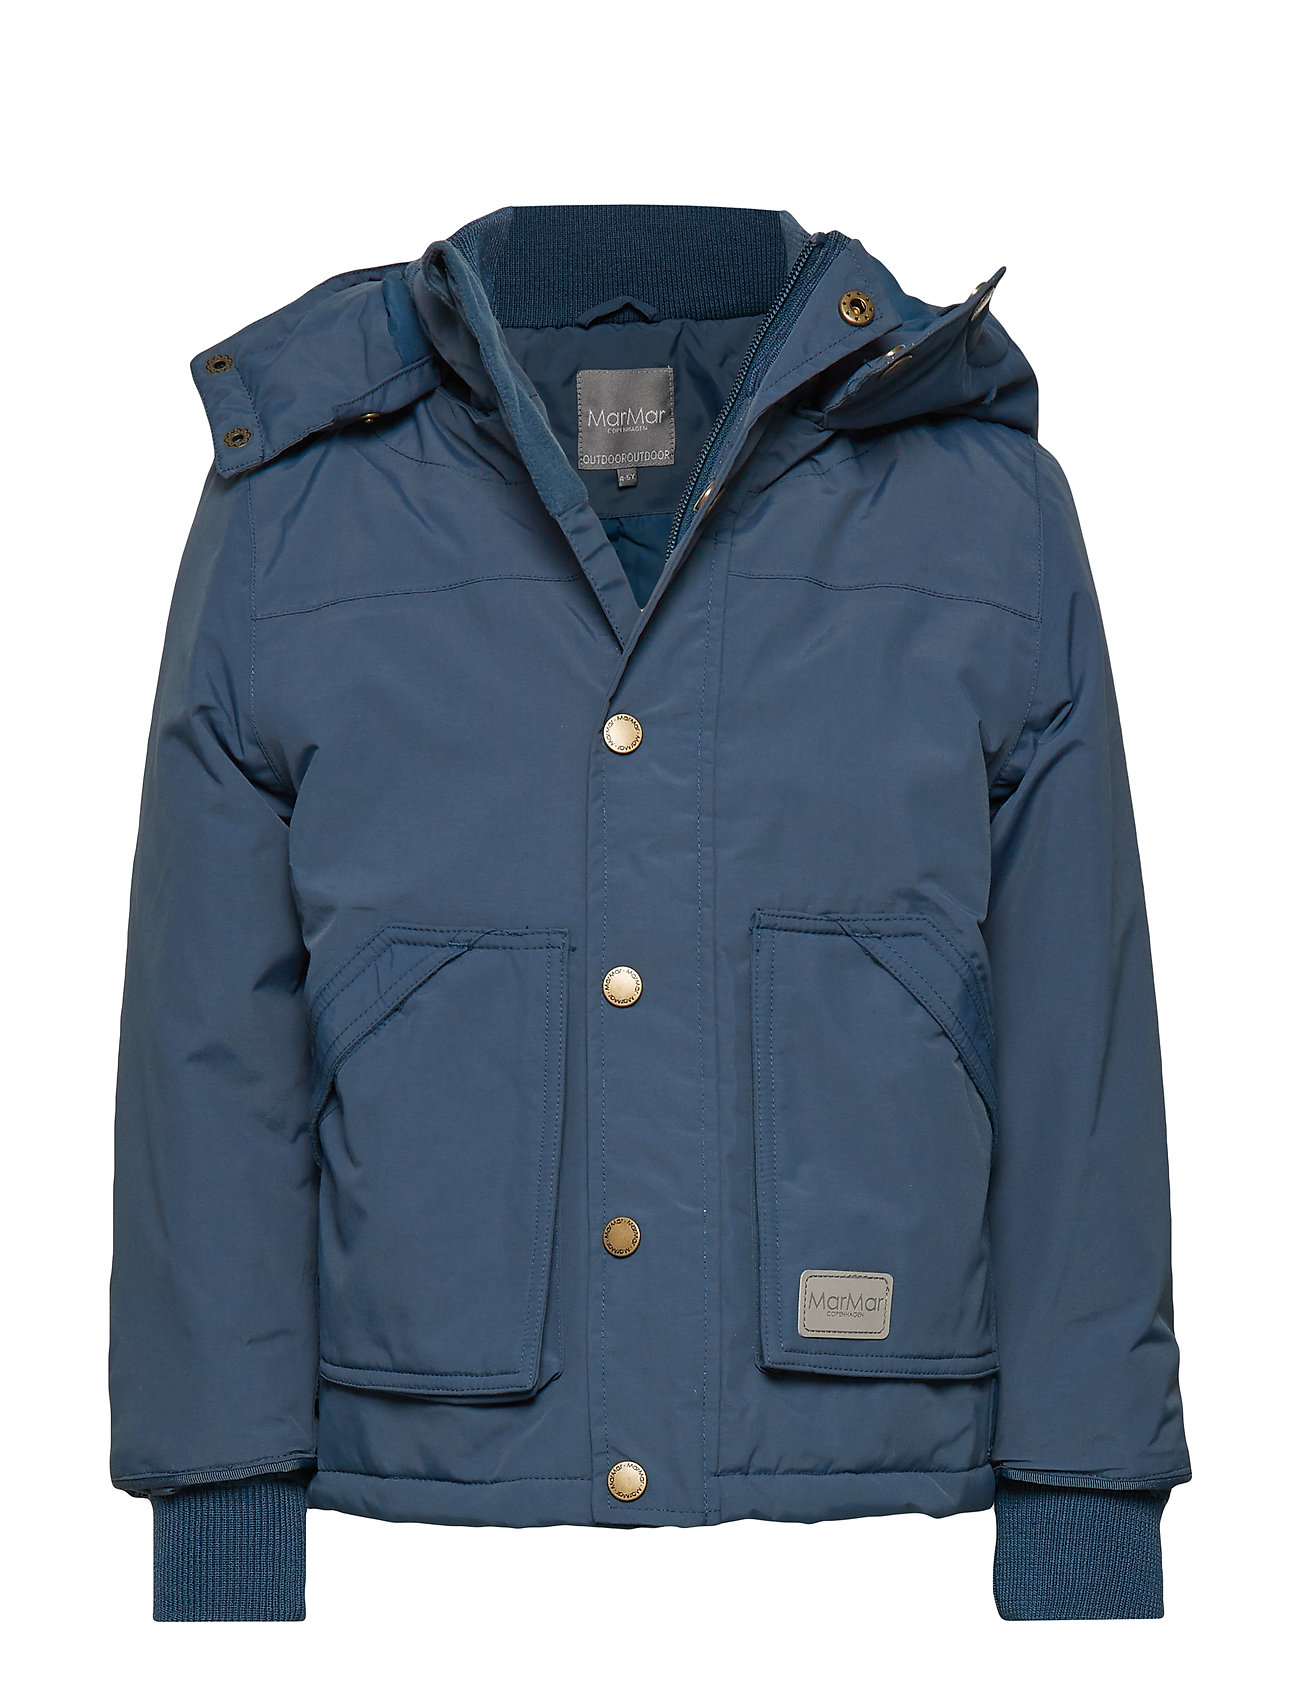 MarMar Cph Oskar Jacket - MIDNIGHT NAVY